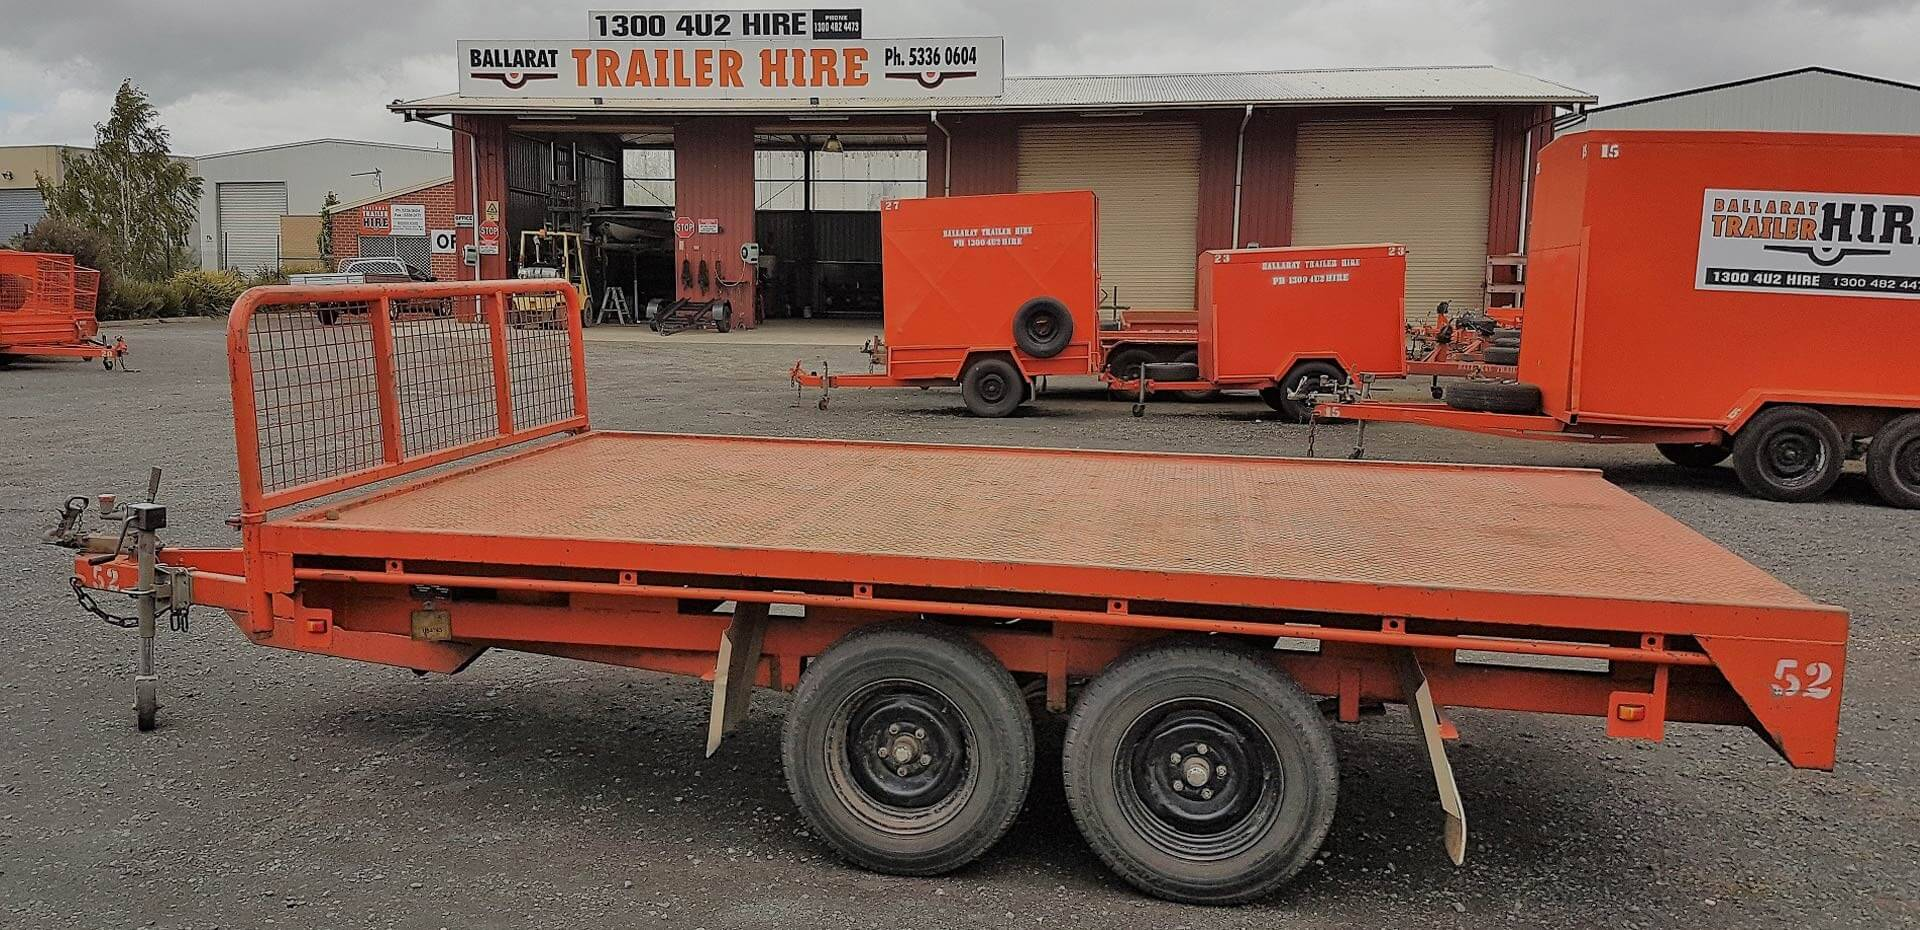 Does your trailer need repairs?